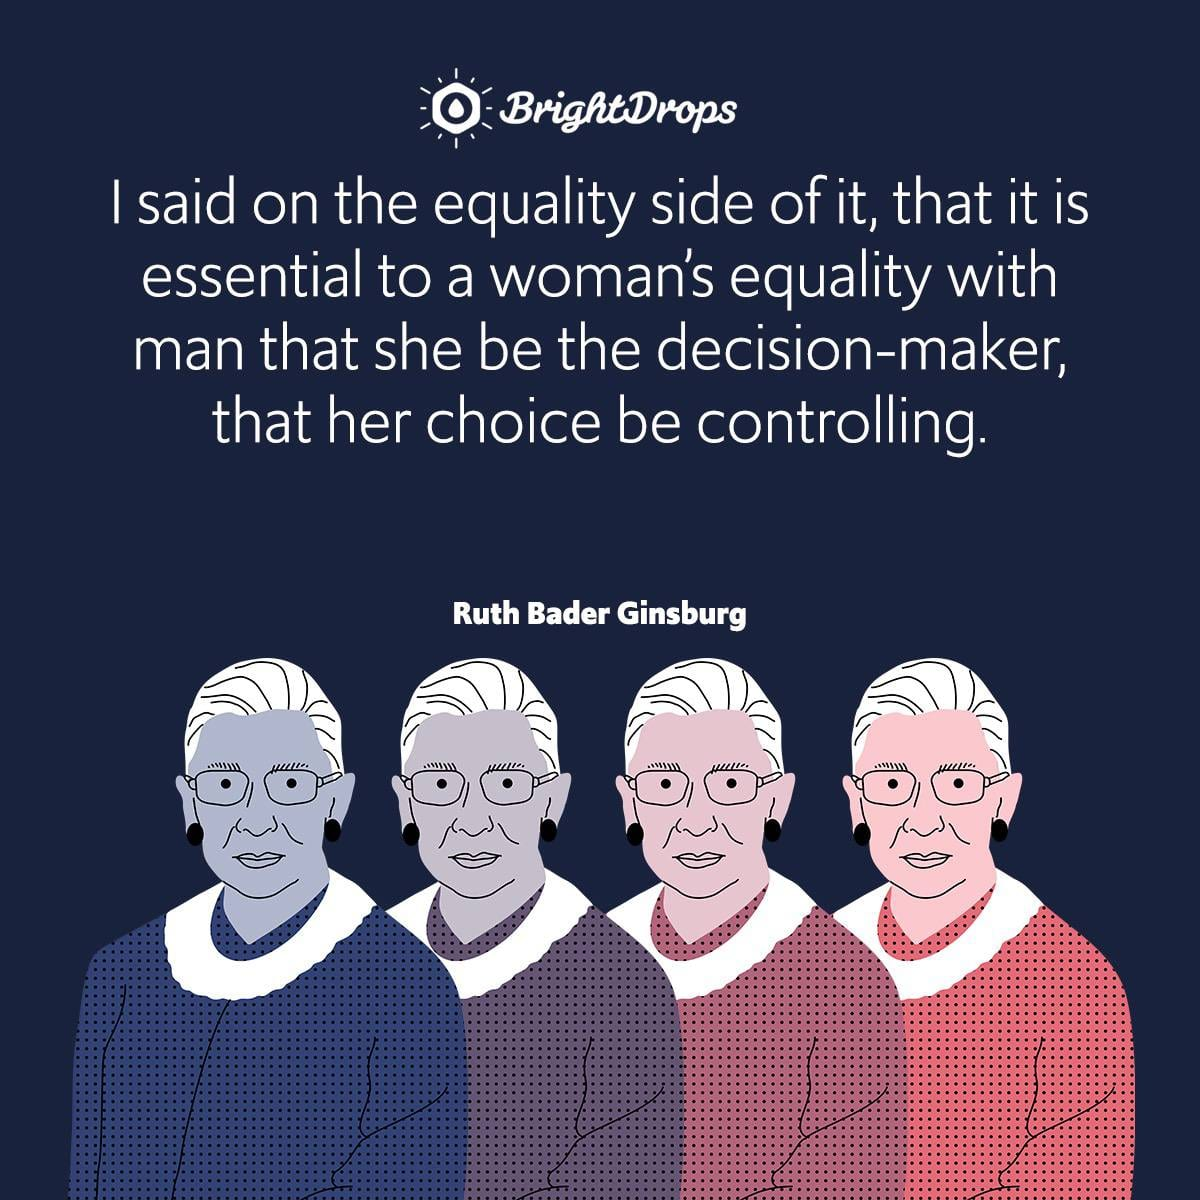 I said on the equality side of it, that it is essential to a woman's equality with man that she be the decision-maker, that her choice be controlling.